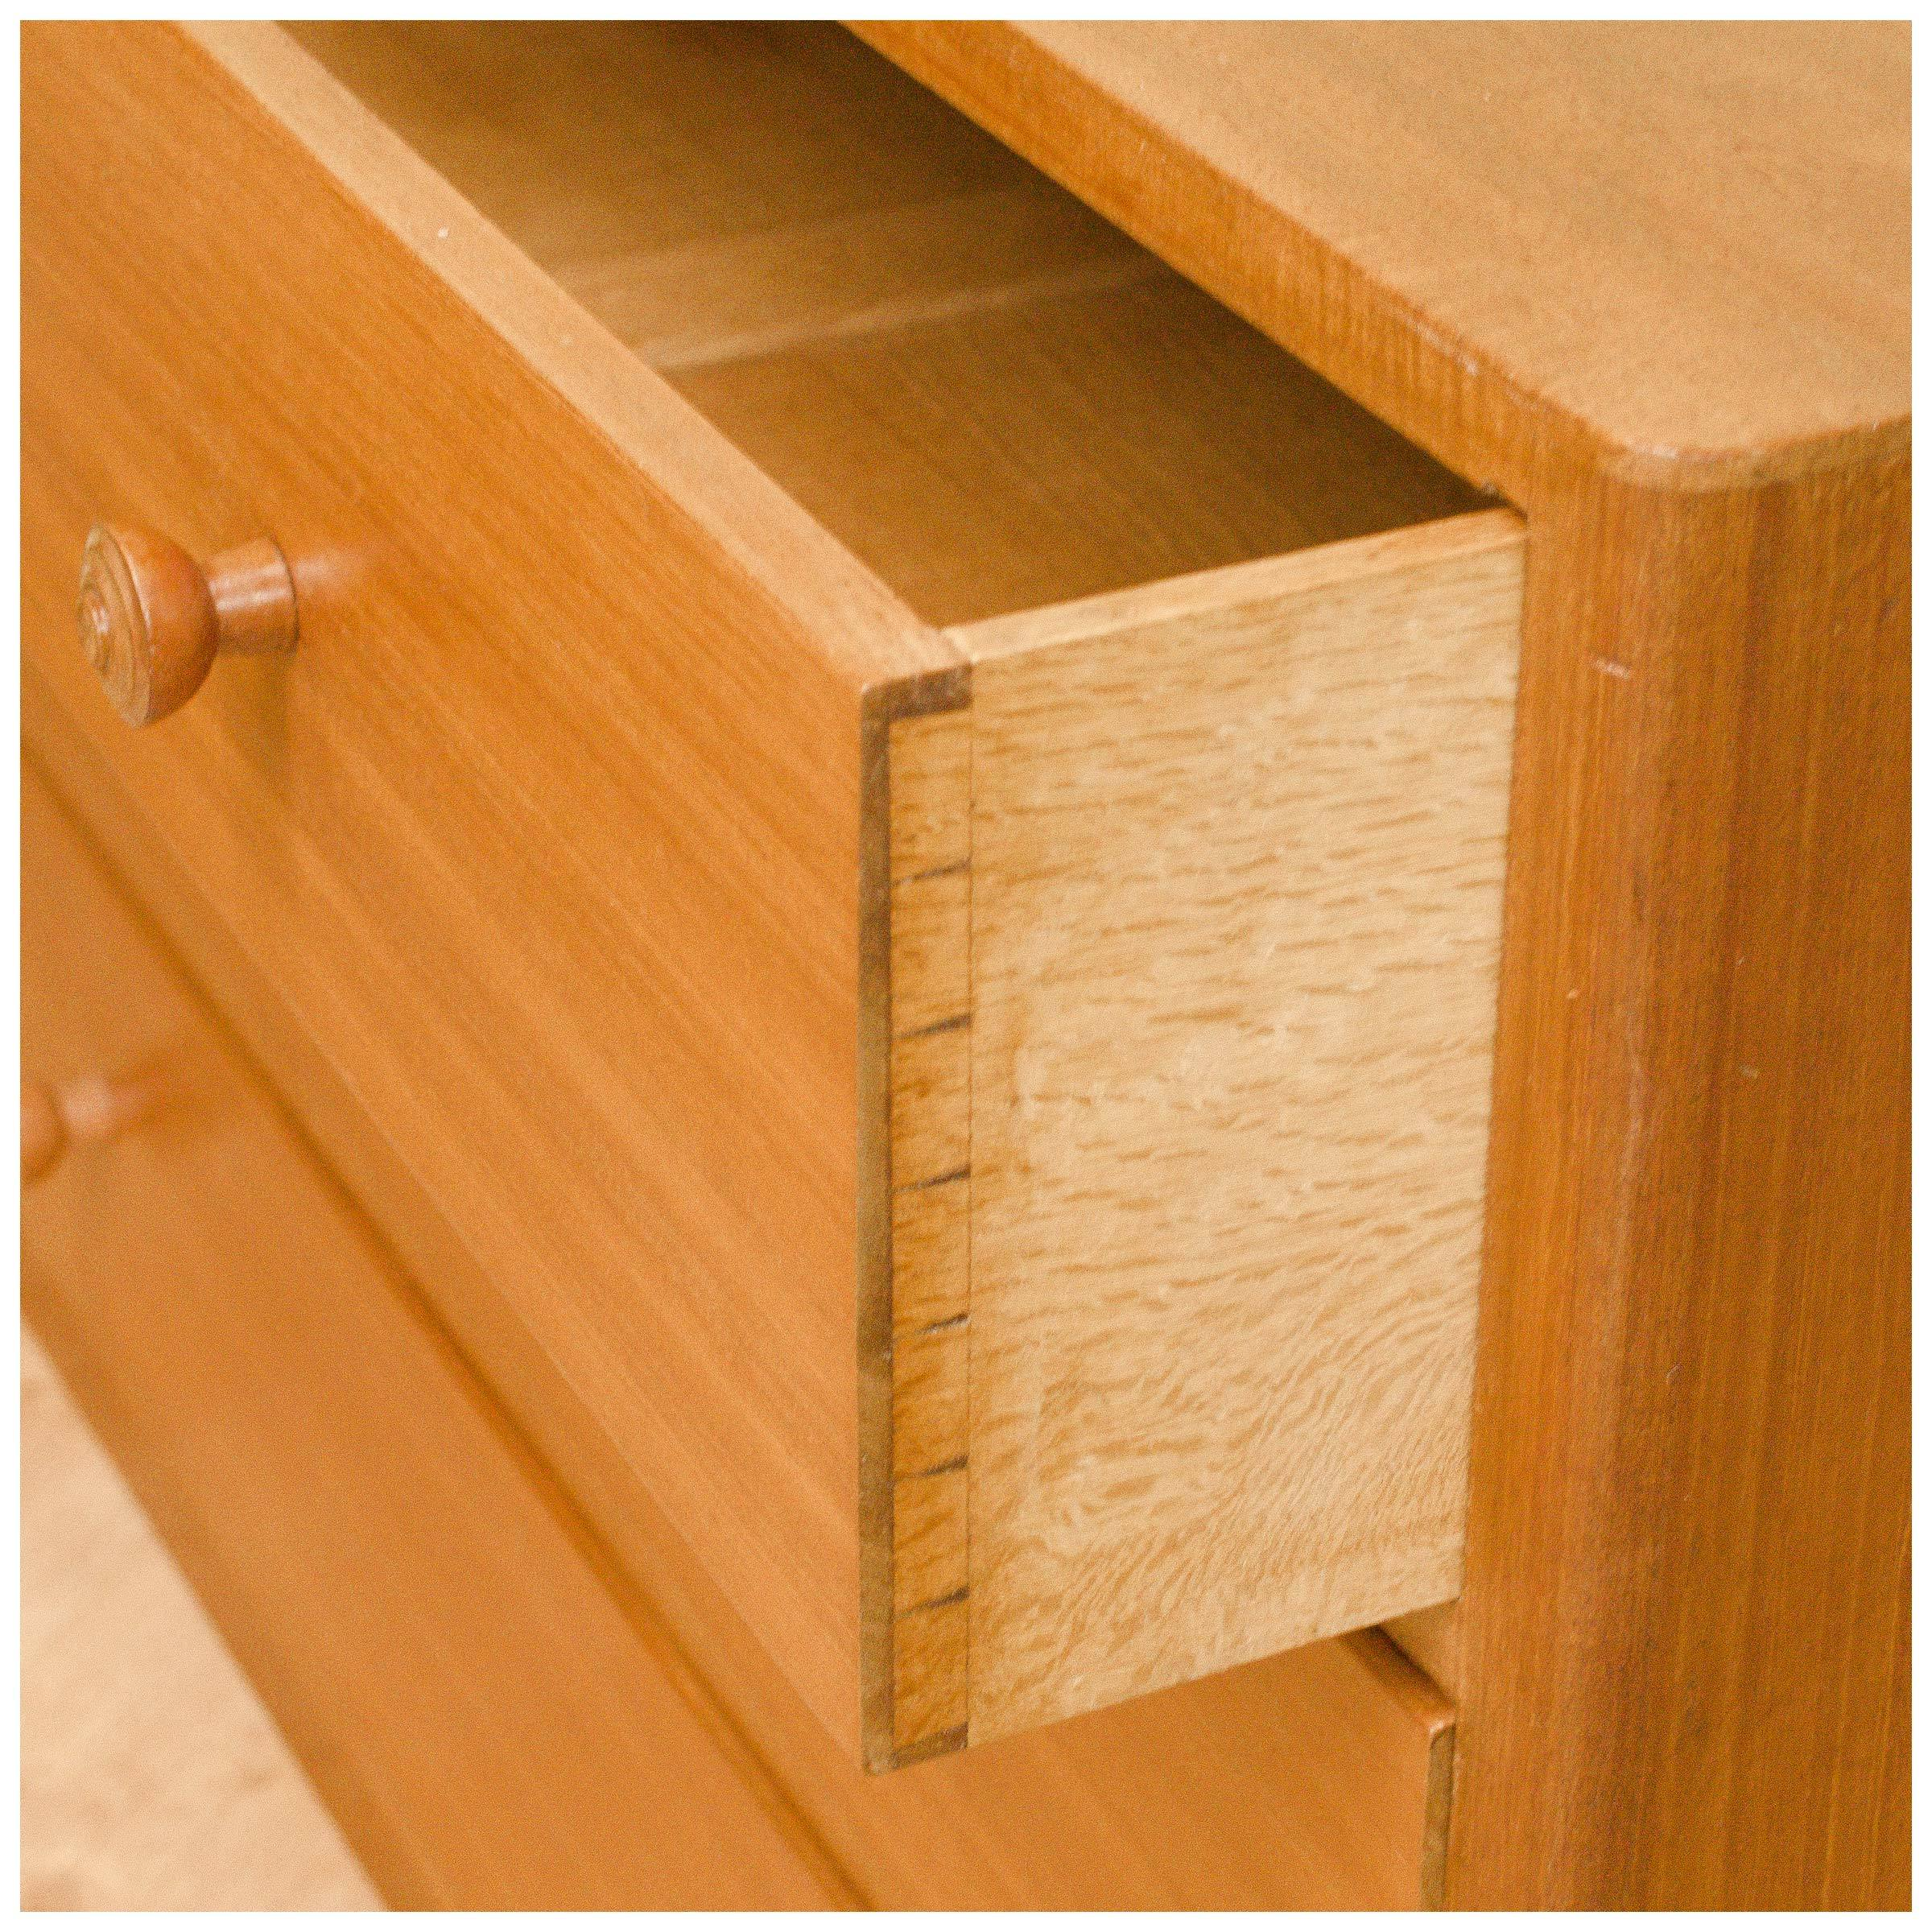 cotswold-school-arts-crafts-walnut-chest-of-drawers-by-gordon-russell-b0019847j.jpg